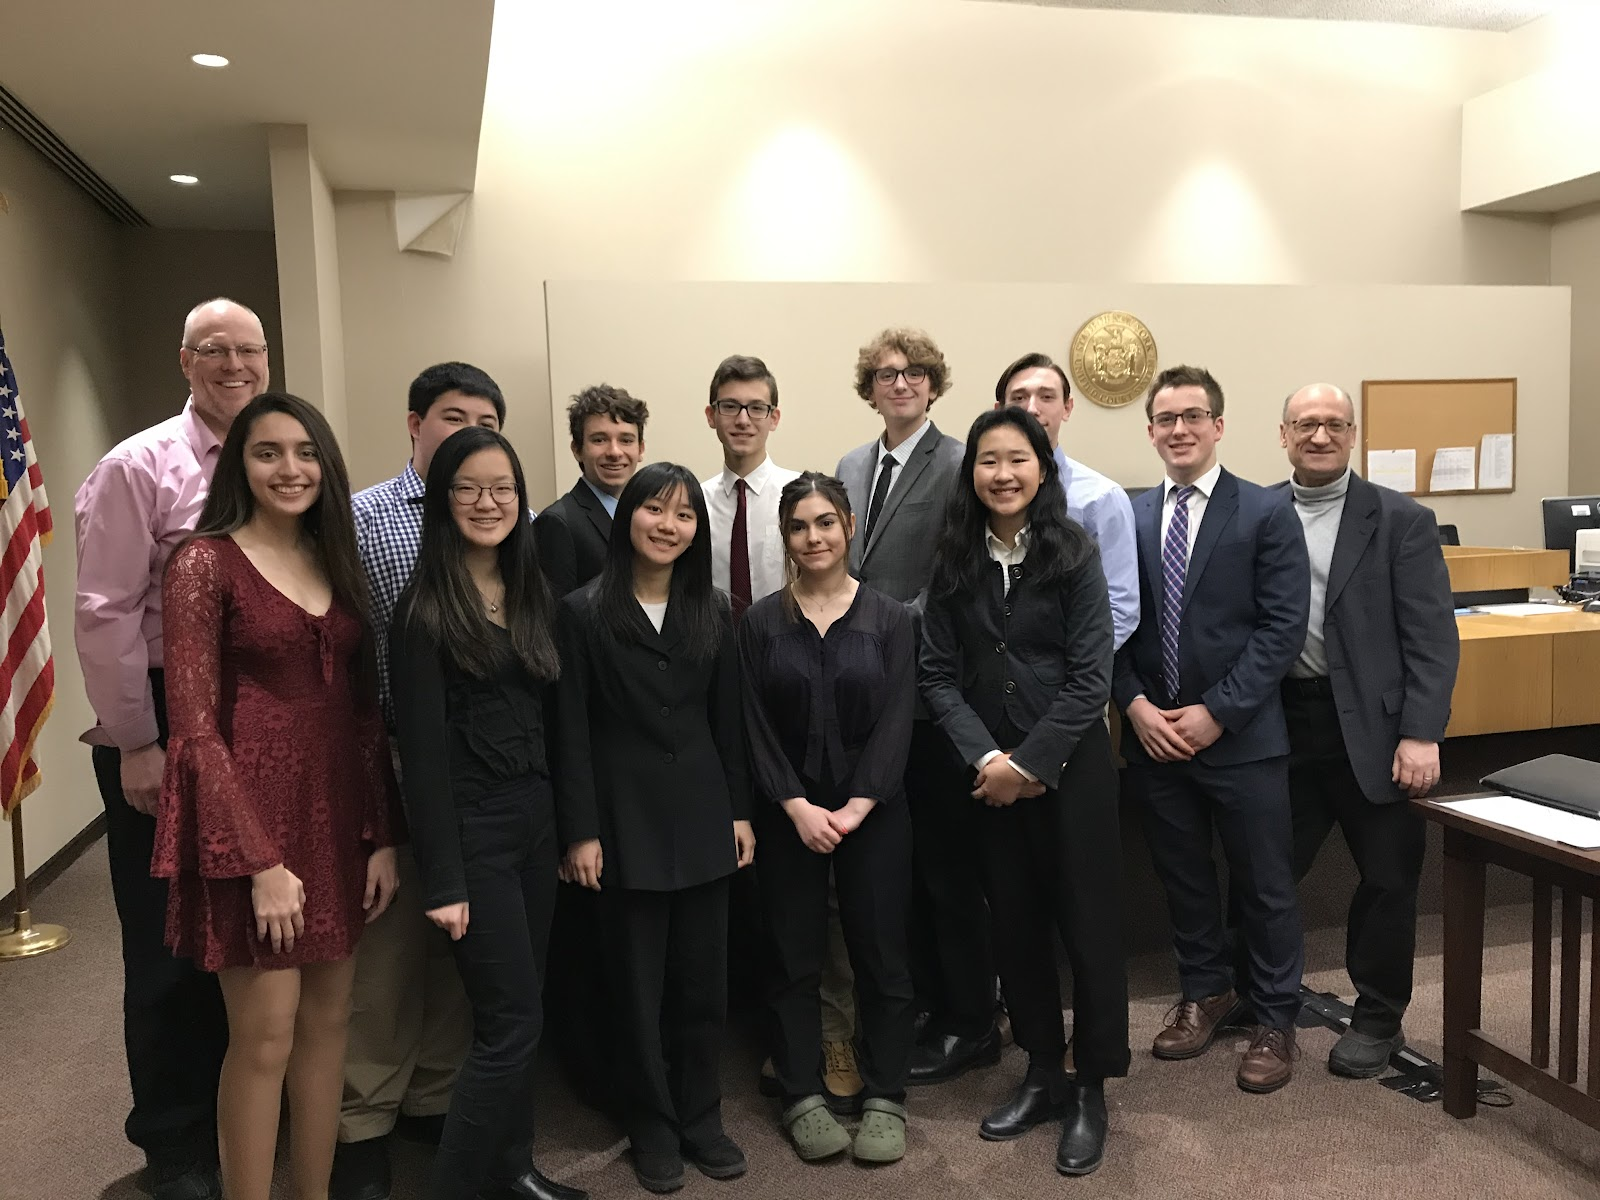 Mock Trial: Prosecuting Your High School Years With A Club